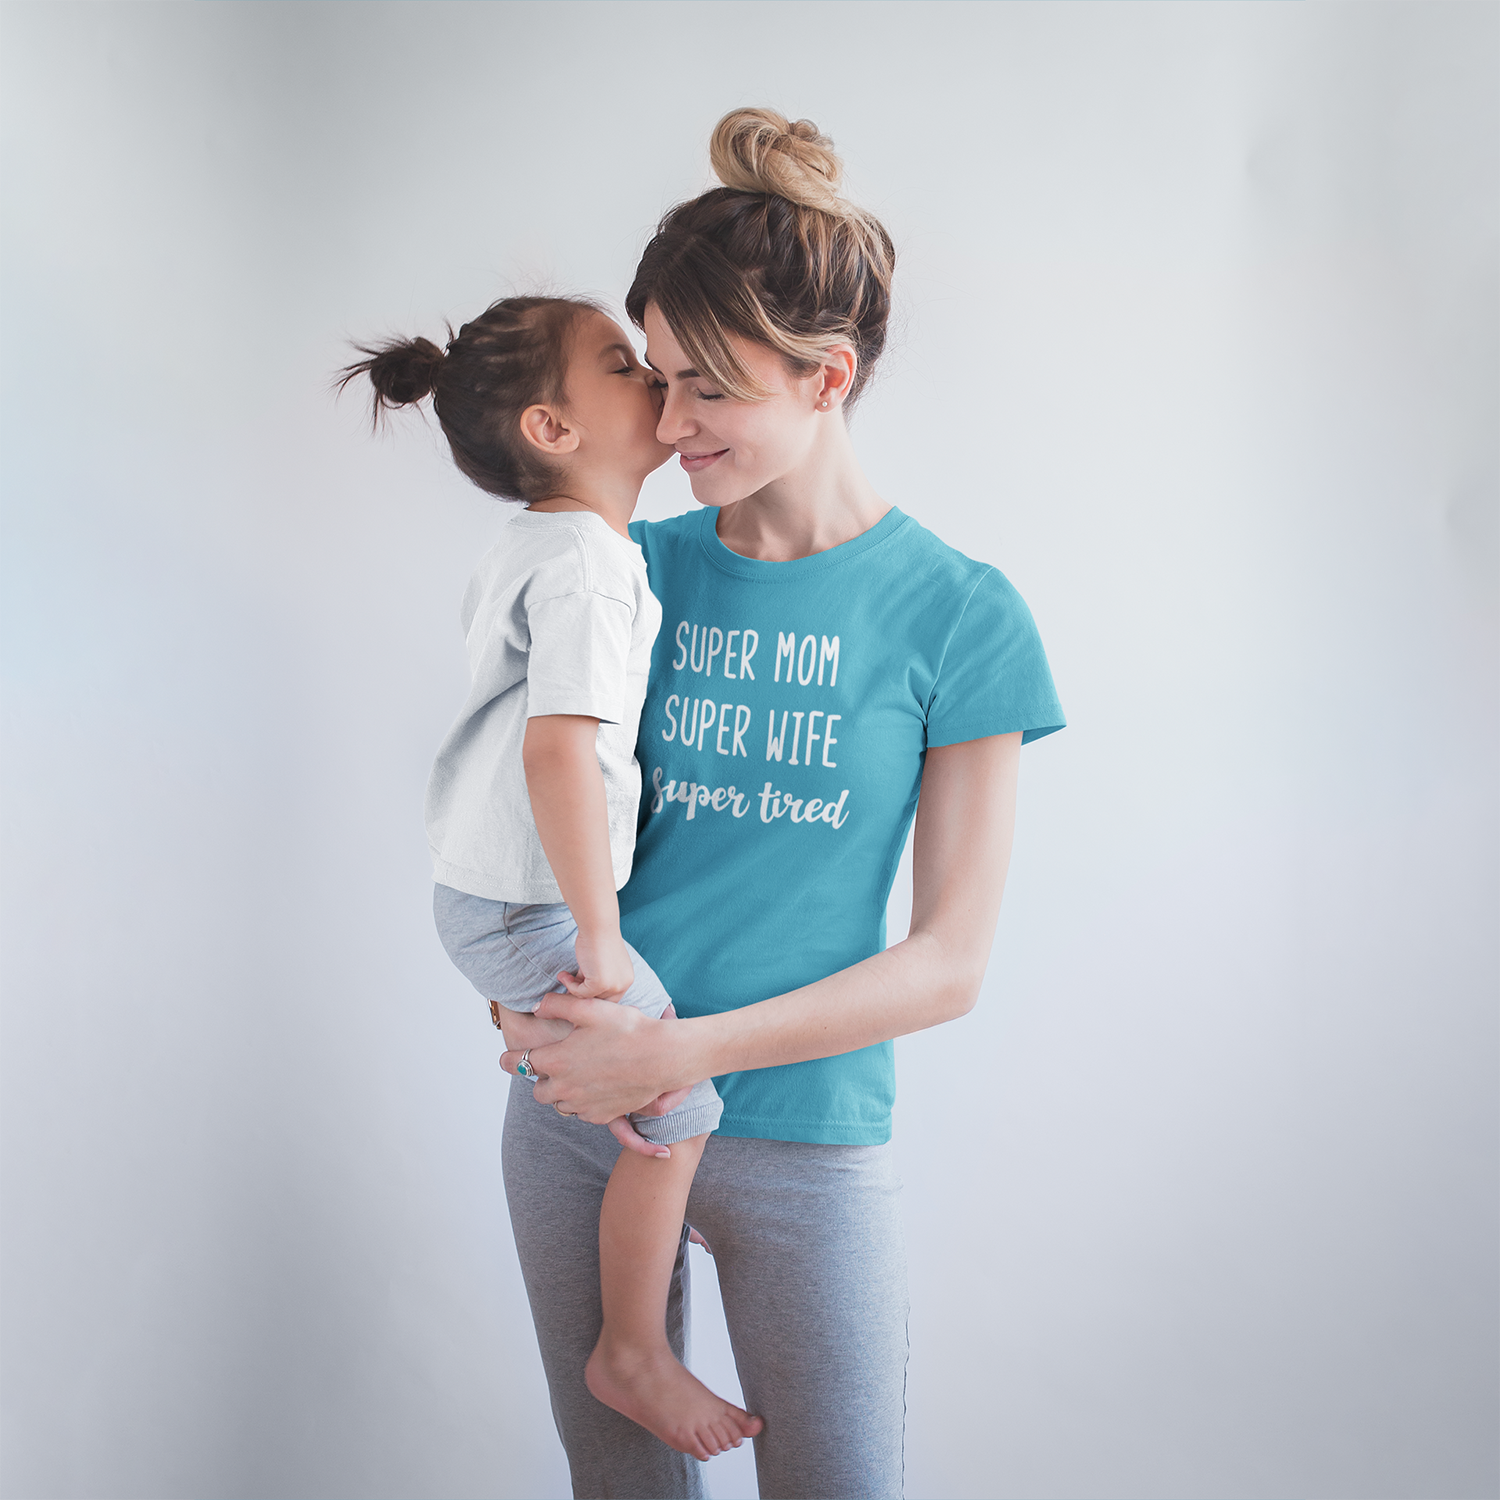 'Super mom / Super wife / Super tired' adult shirt